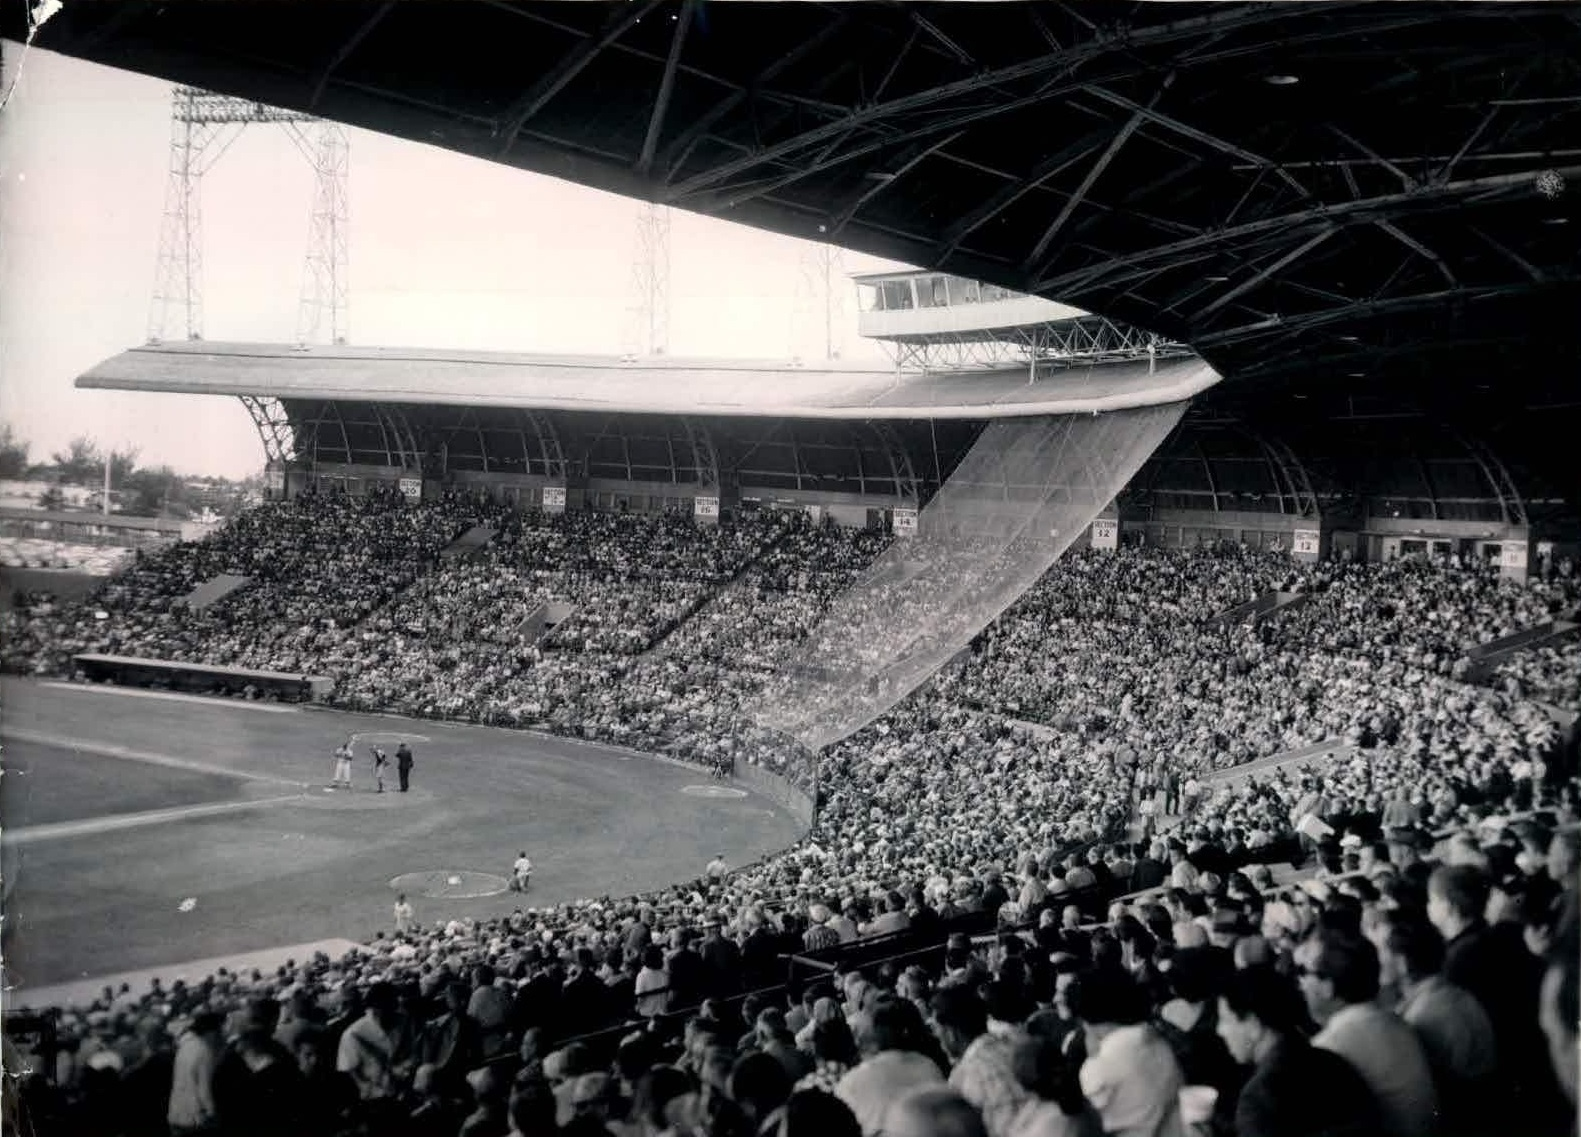 Miami Stadium, Miami, FL, ca 1953 - This 13,500-seat ballpark with unique cantilever-style roof was built in 1948 and while it never gained national attention as Orange Bowl (just a couple miles southwest) did, in South Florida it became the symbol of baseball. Demolished in 2001 https://t.co/rqeOw8ERio